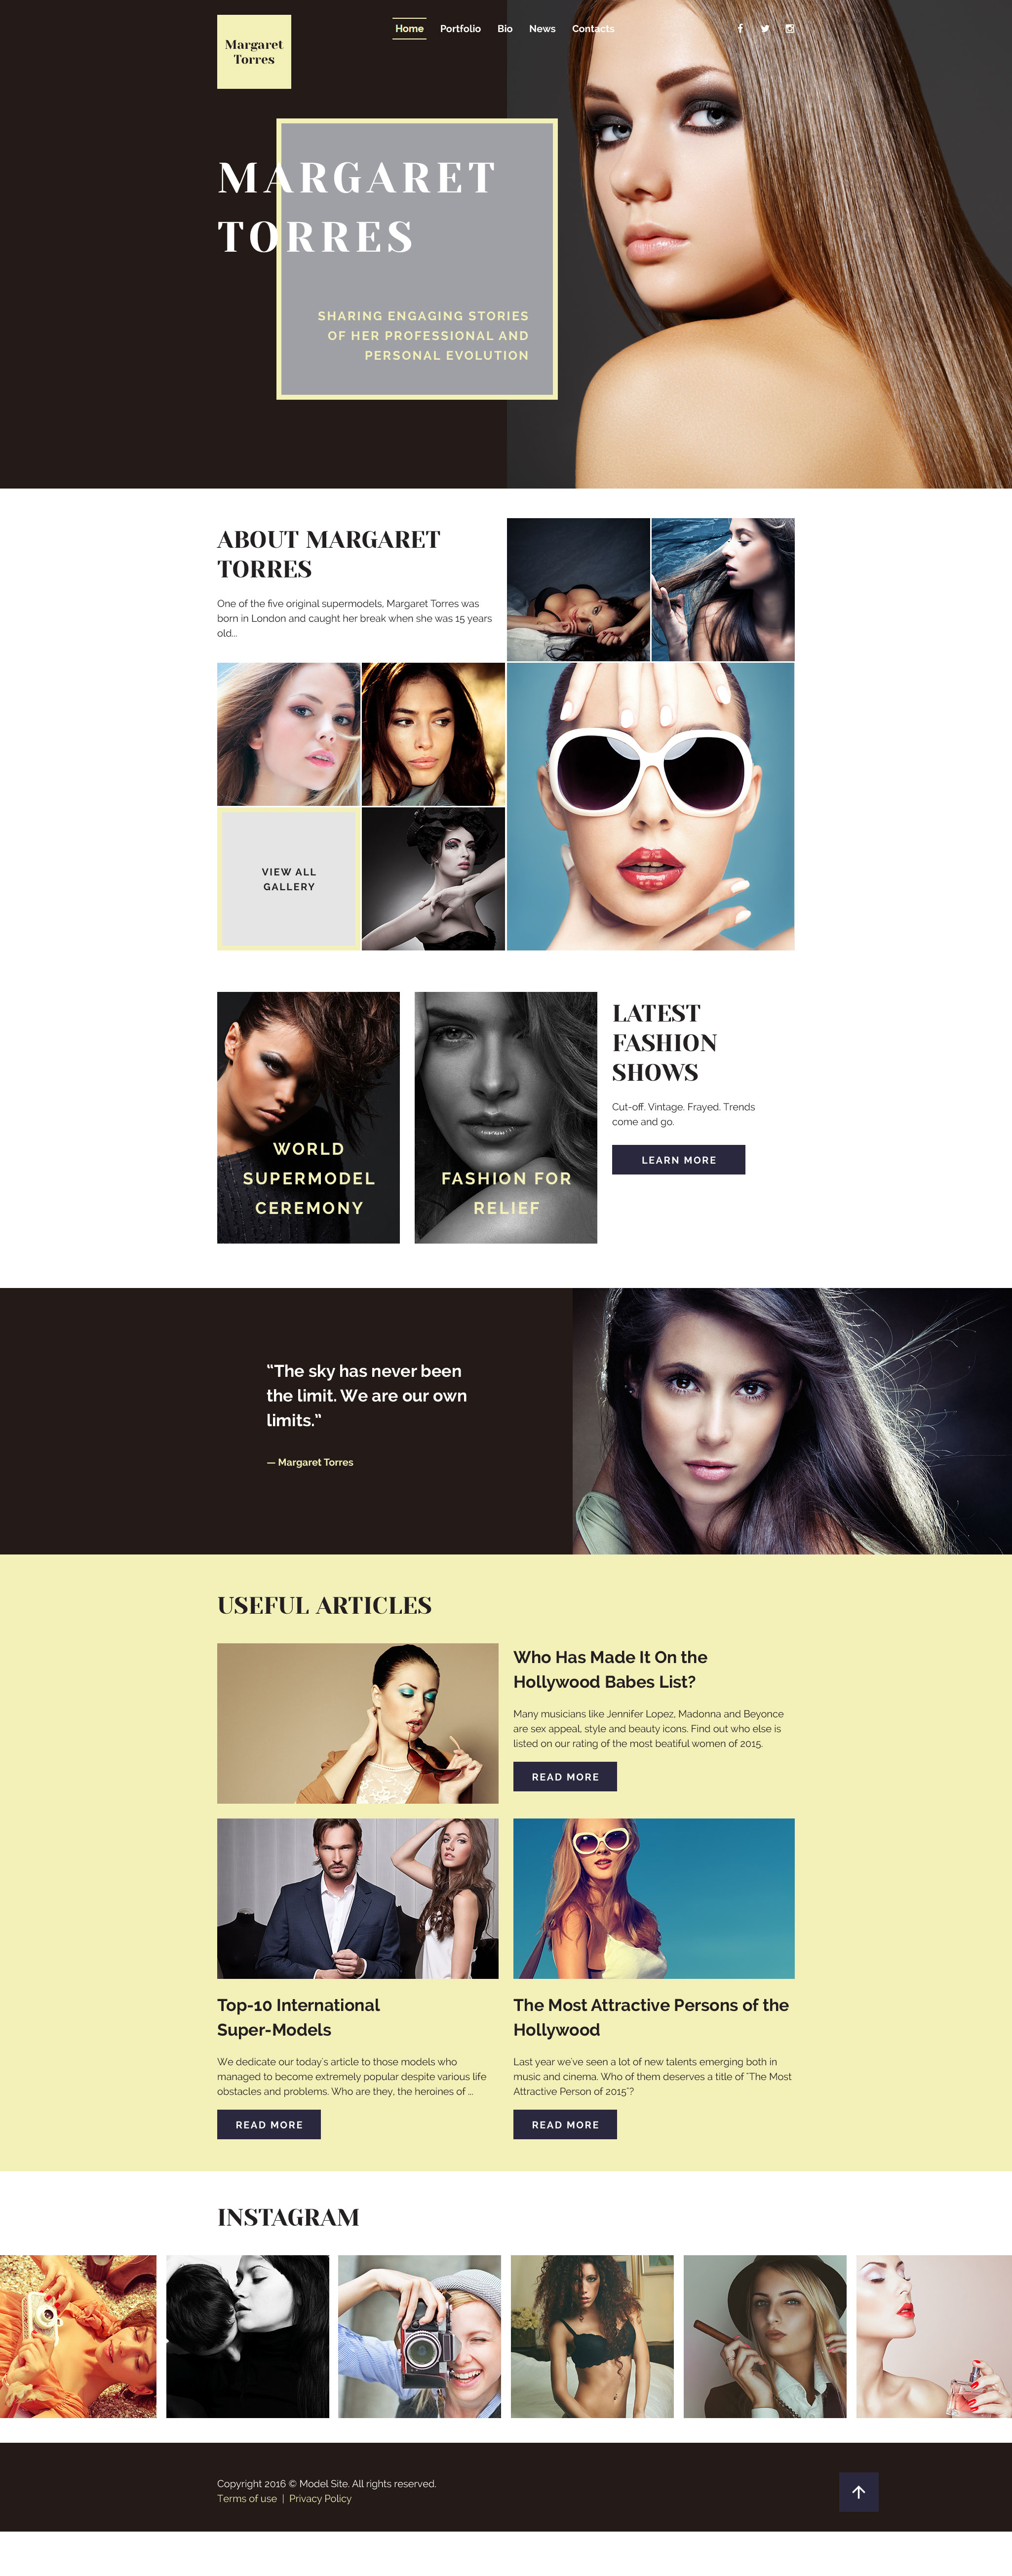 Free website templates for free download about (2,503) 62